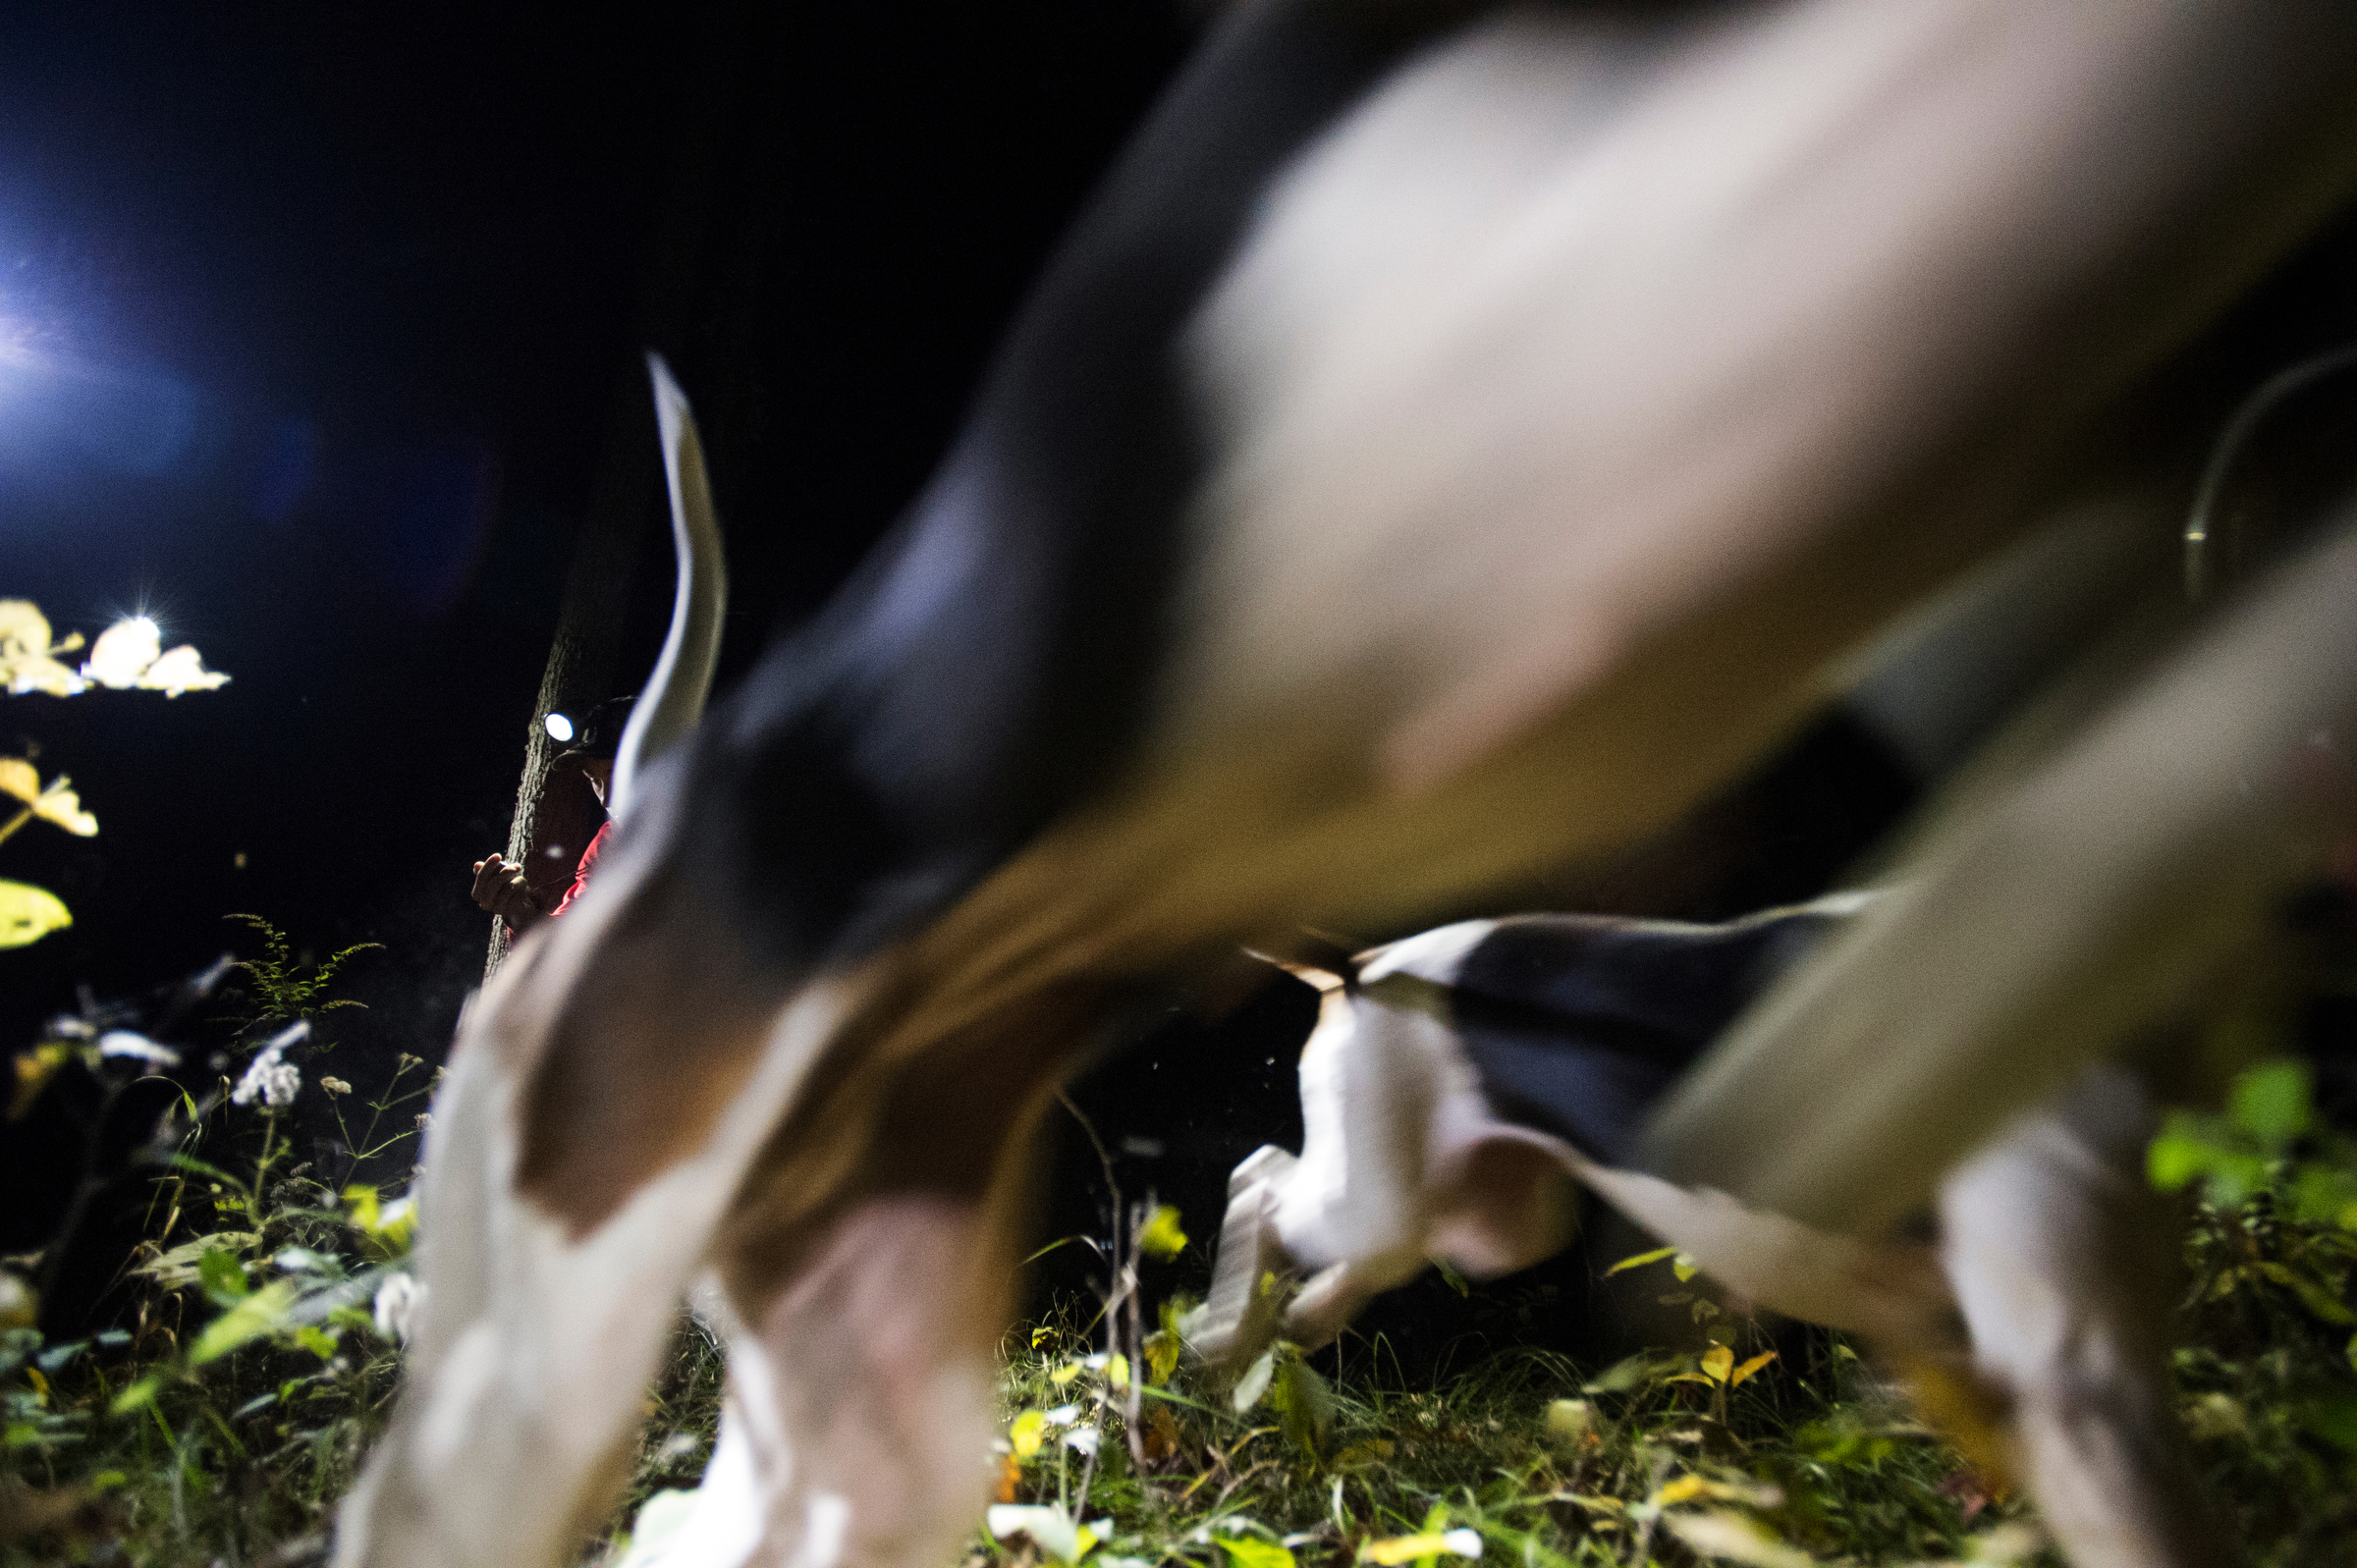 Dogs take off after the scent trail of raccoons during a late fall Missouri Federation youth hunt, where young hunters bring the dogs they've trained to compete against each other for prizes.